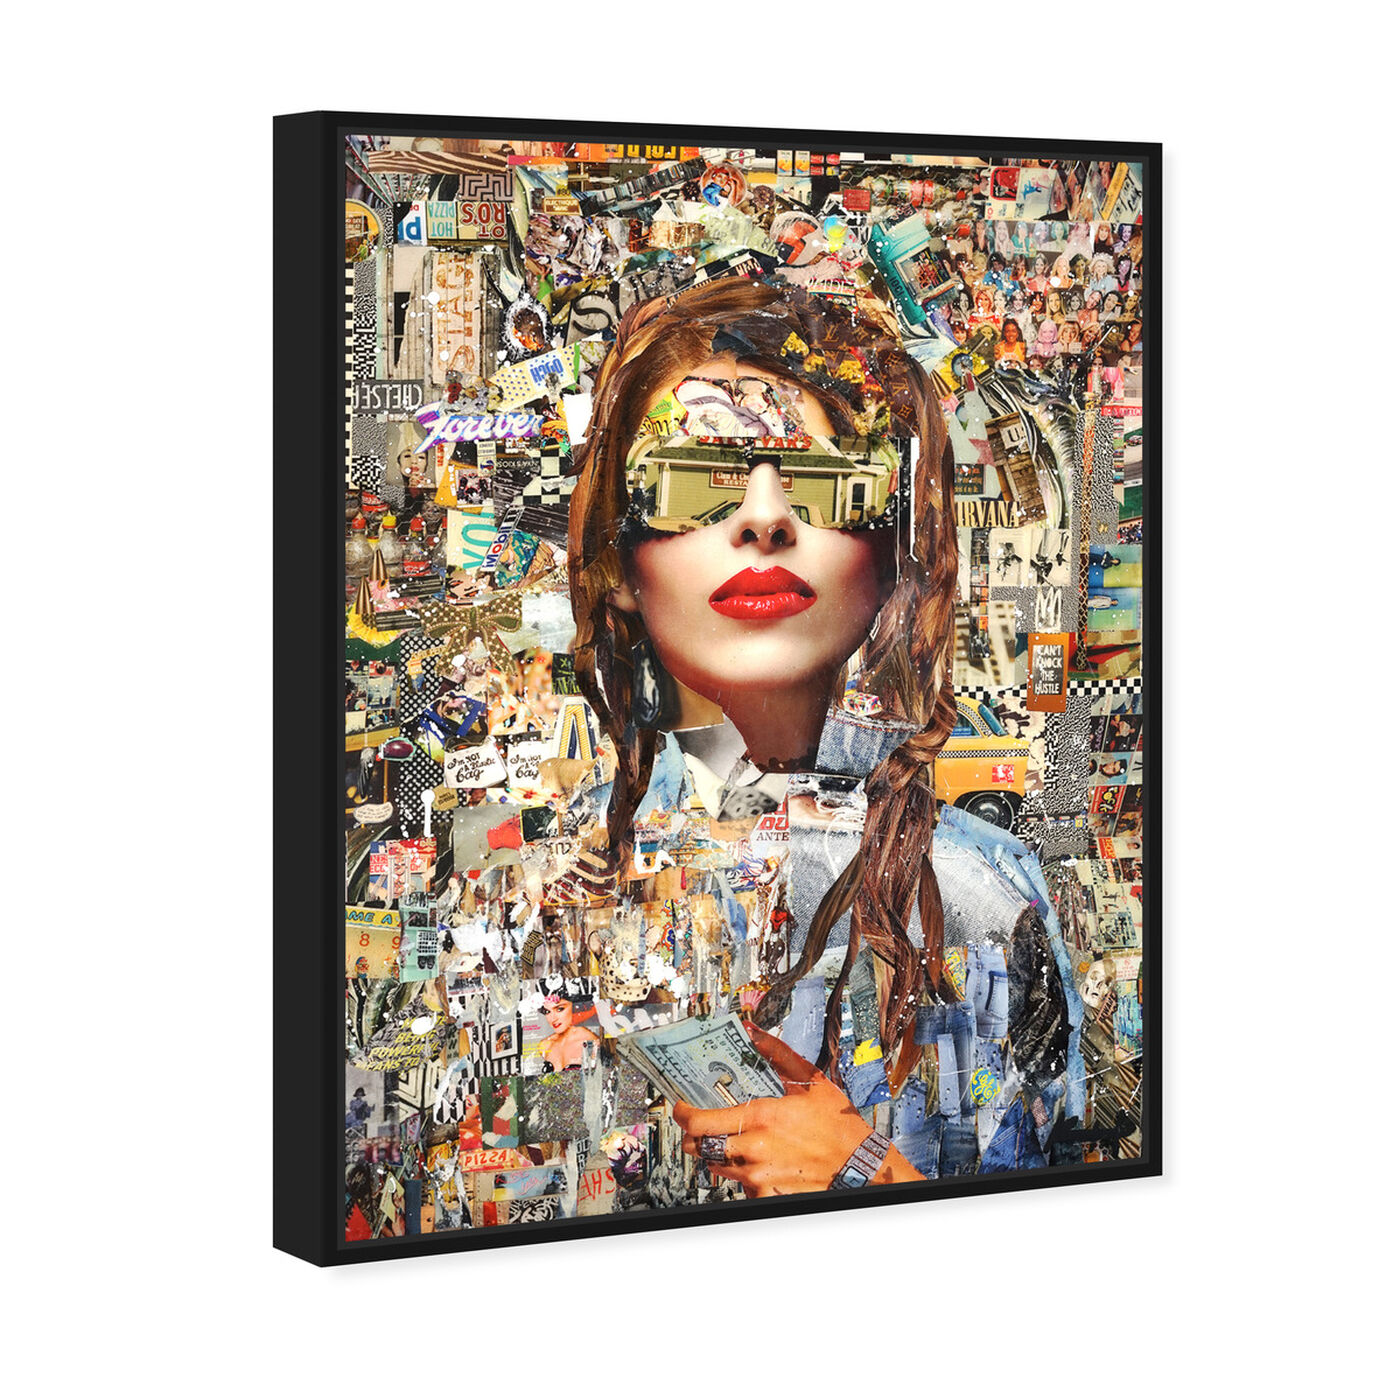 Angled view of Katy Hirschfeld - Successful featuring fashion and glam and portraits art.